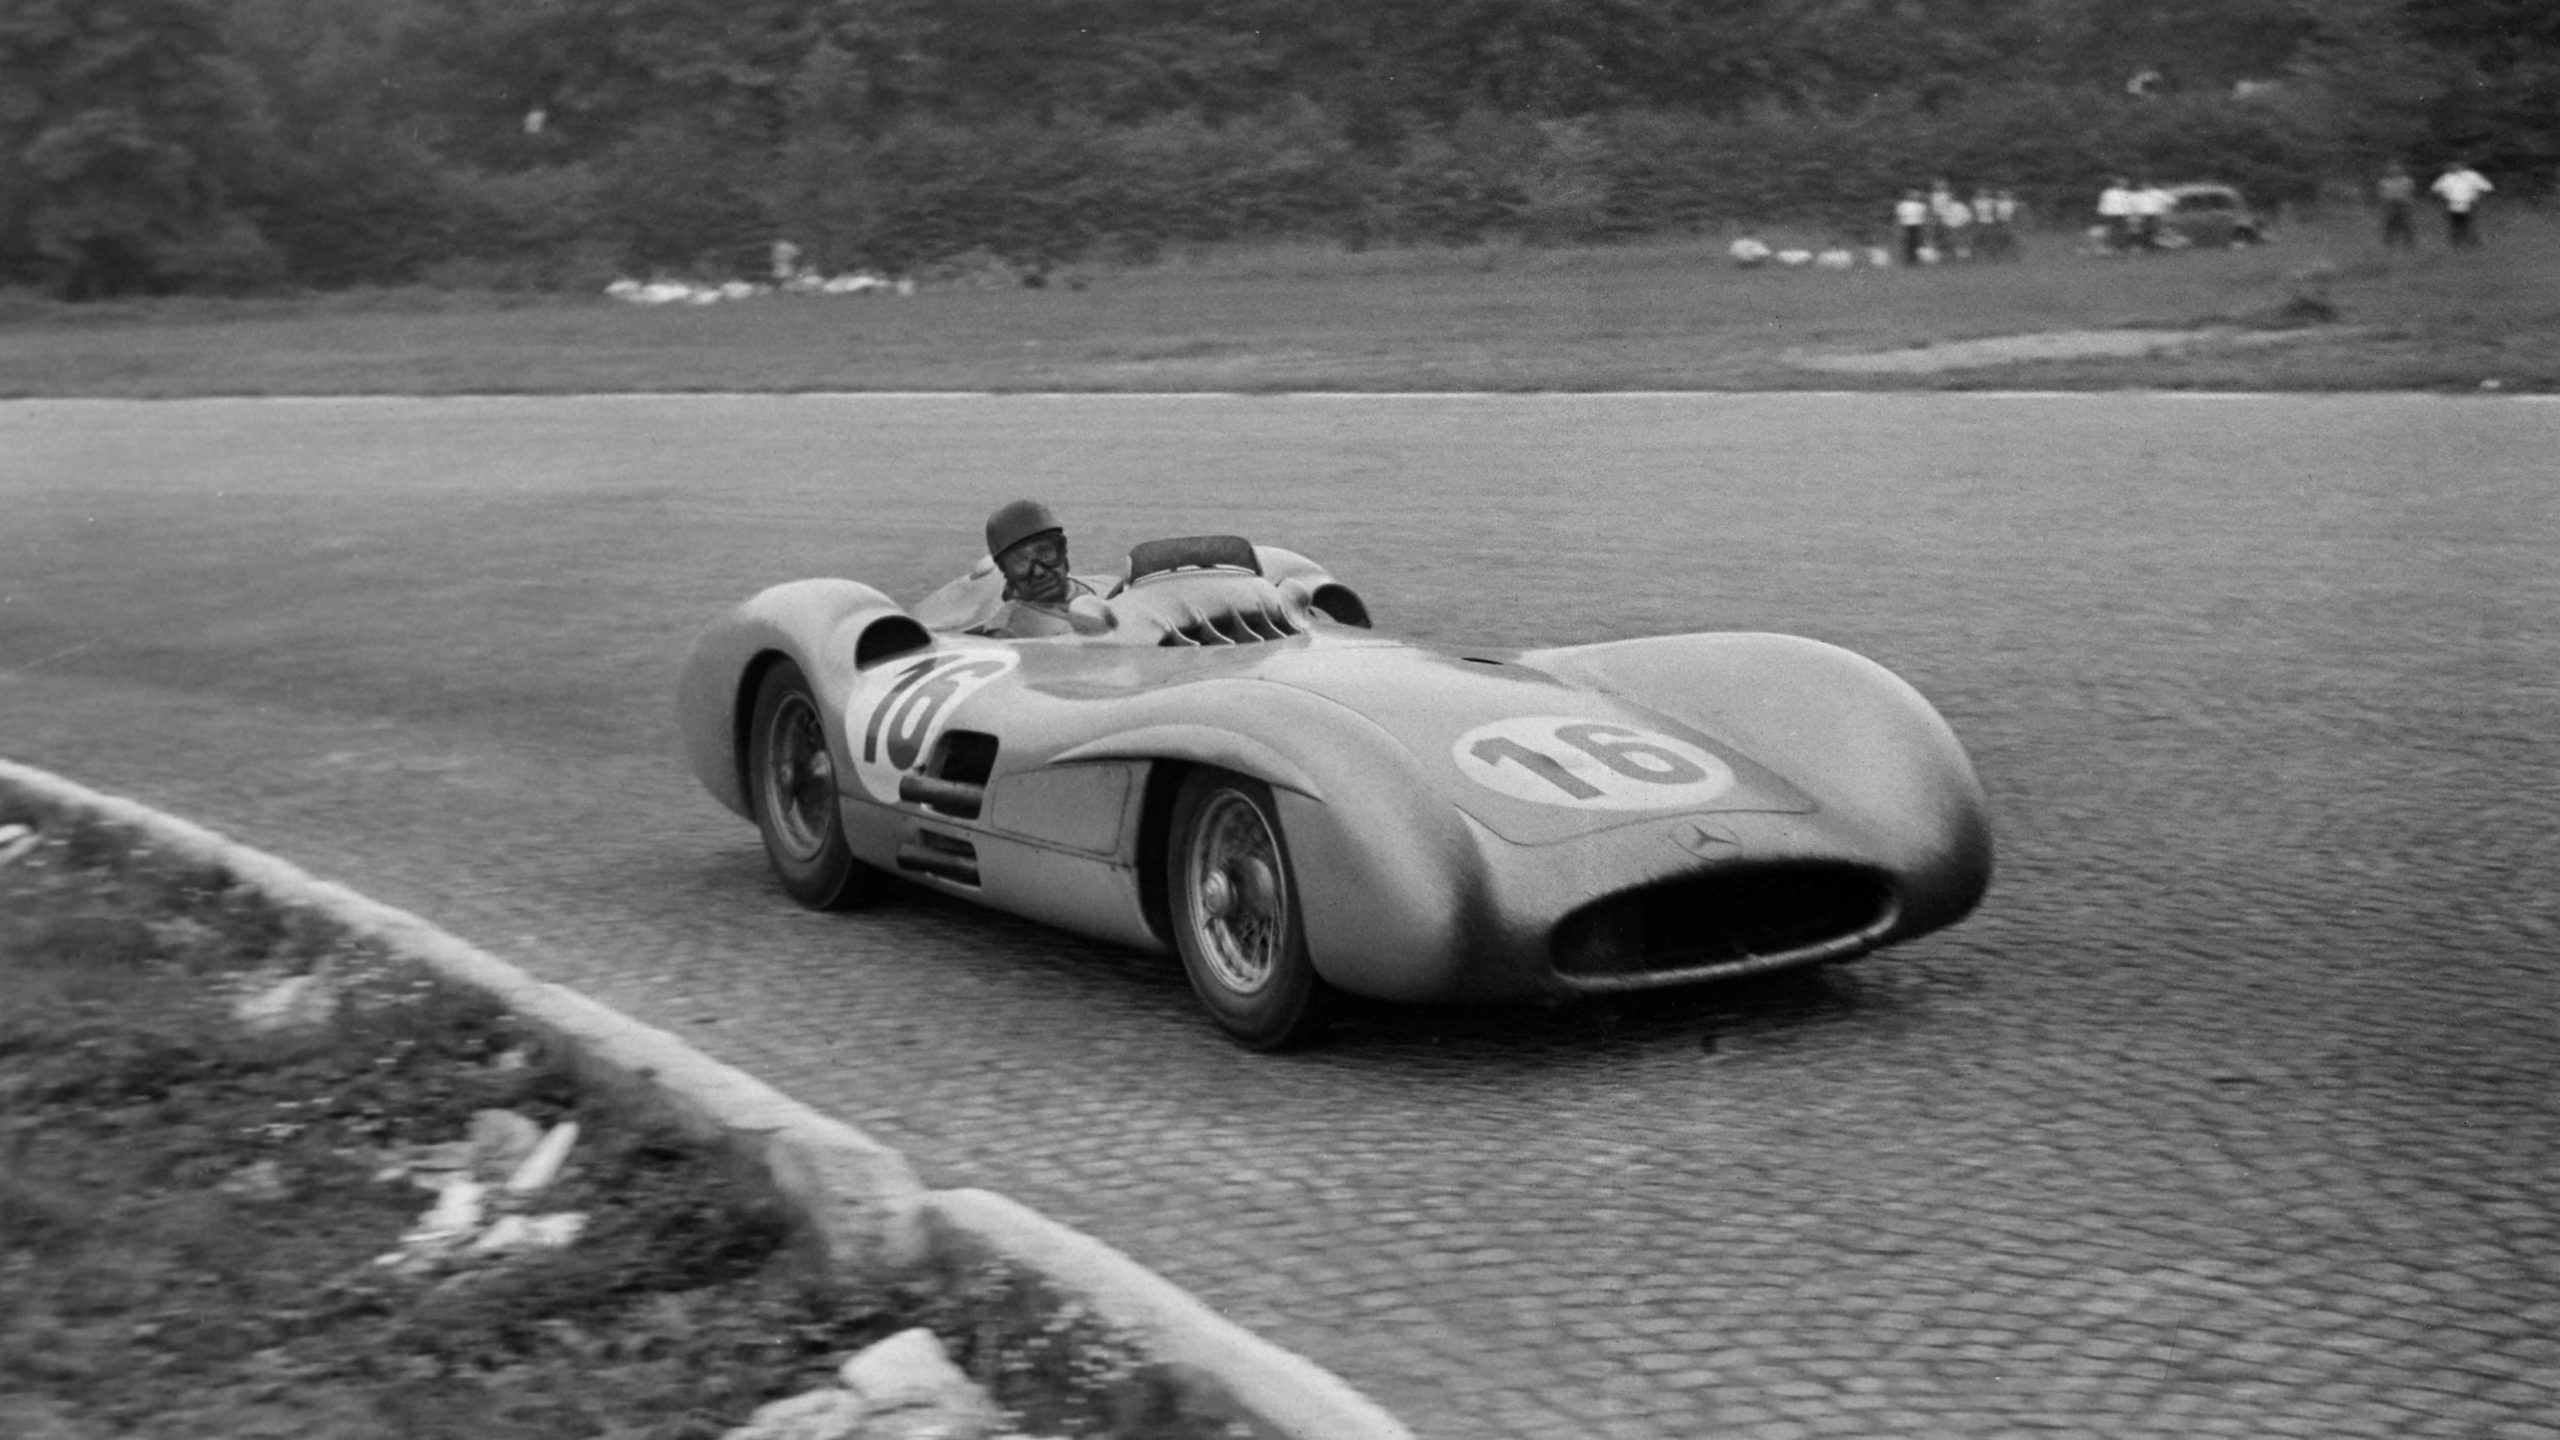 Juan Manuel Fangio, Mercedes W196 during the Italian GP at Autodromo Nazionale Monza on September 05, 1954